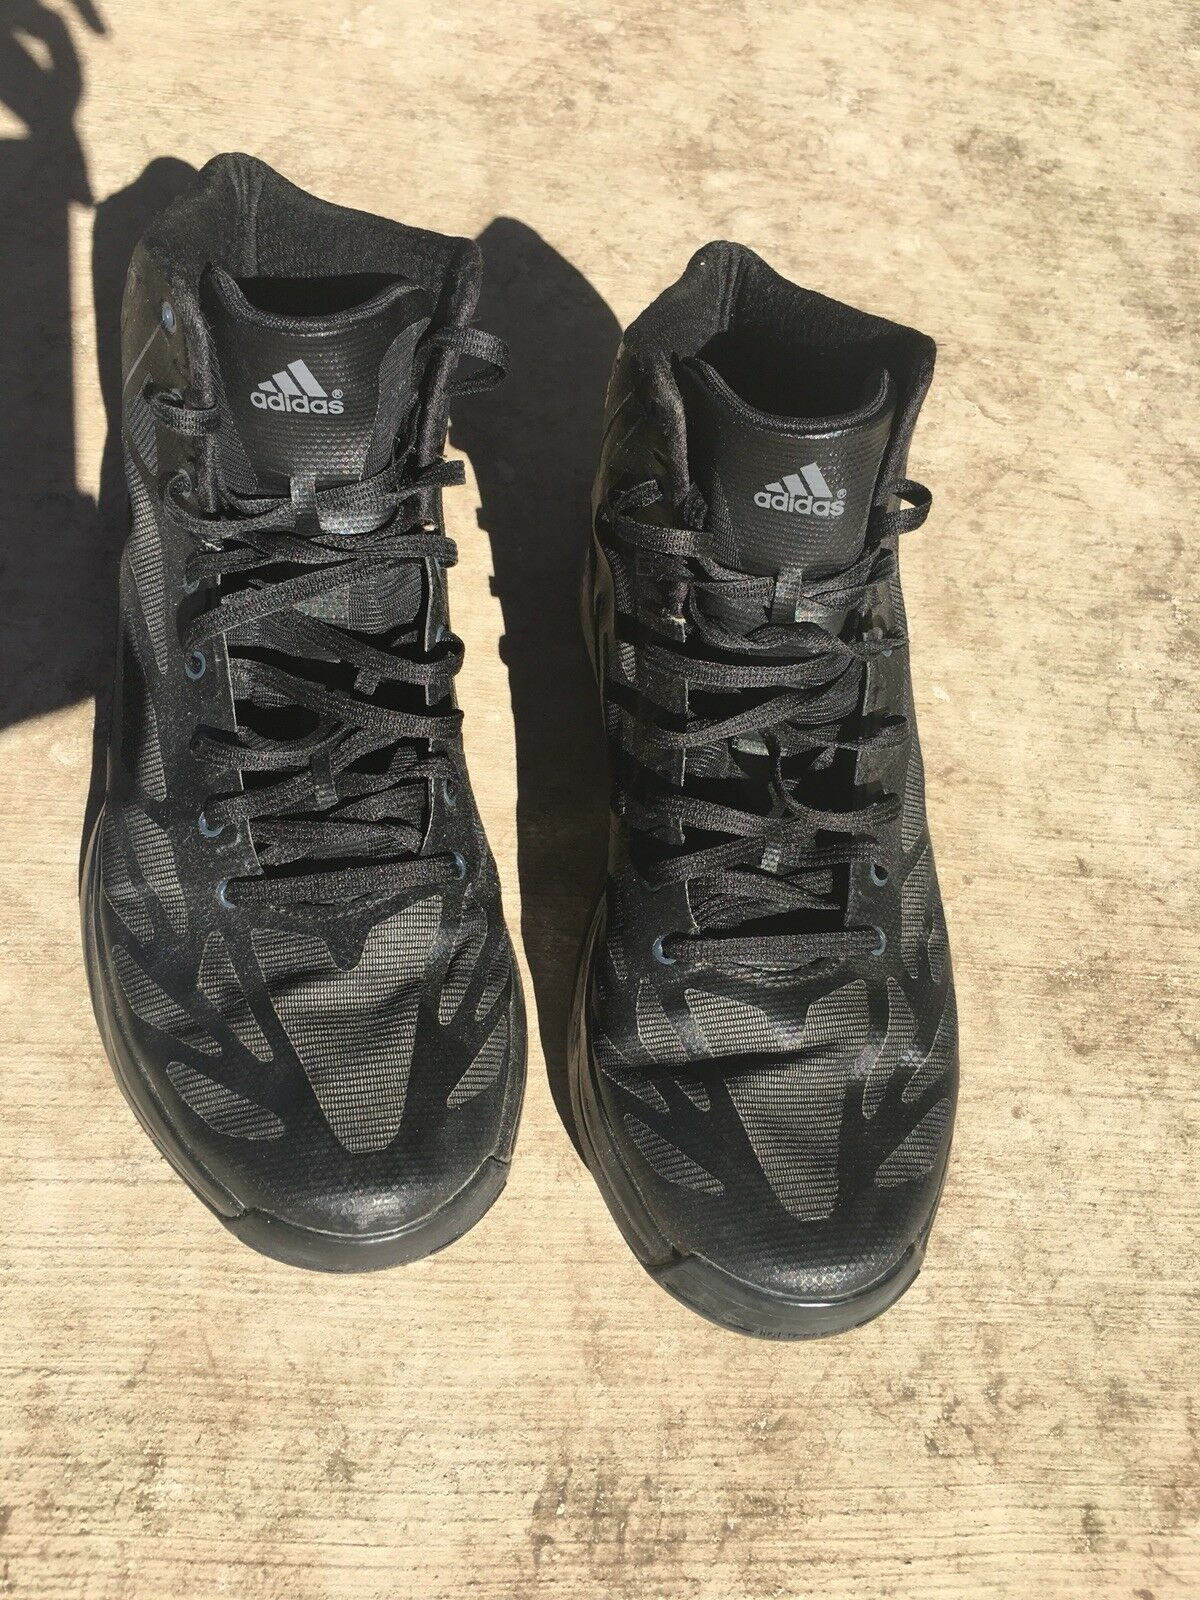 Cheap and 12, wearable Addidas Addizero Size 12, and Black 8df99a